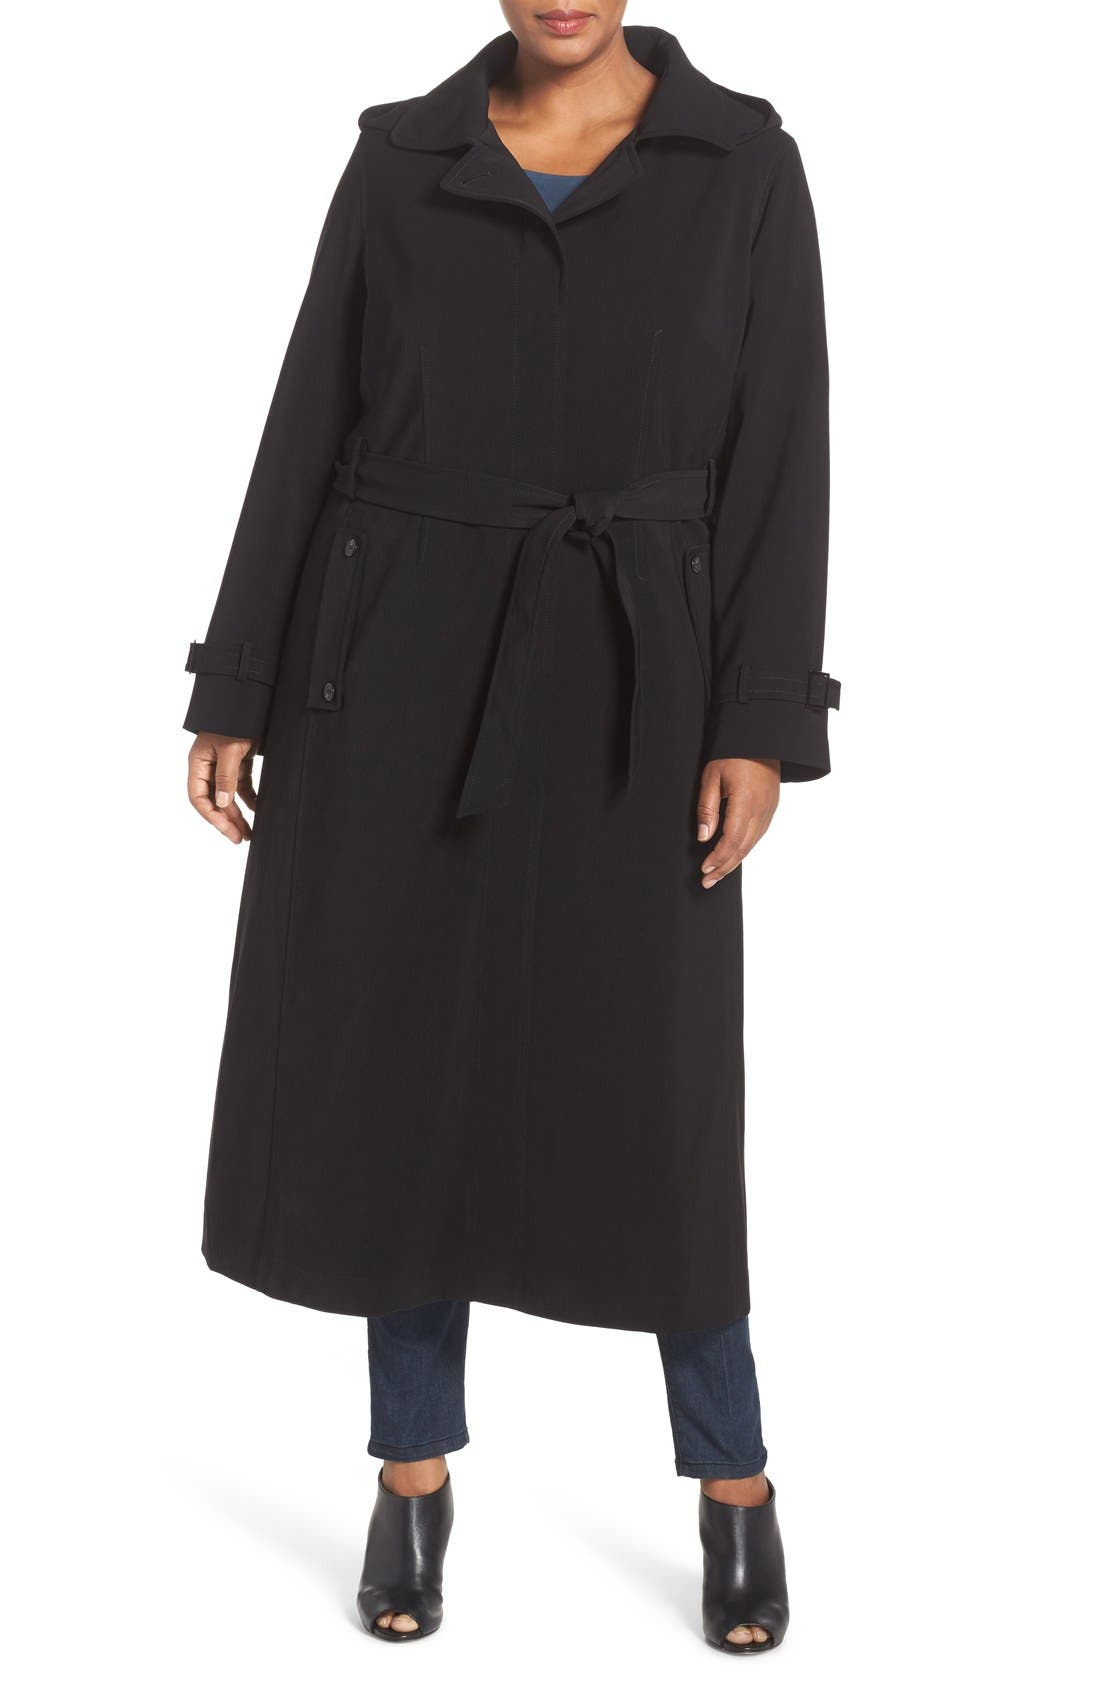 Alternate Image 1 Selected - Gallery Long Nepage Raincoat with Detachable Hood & Liner (Plus Size)